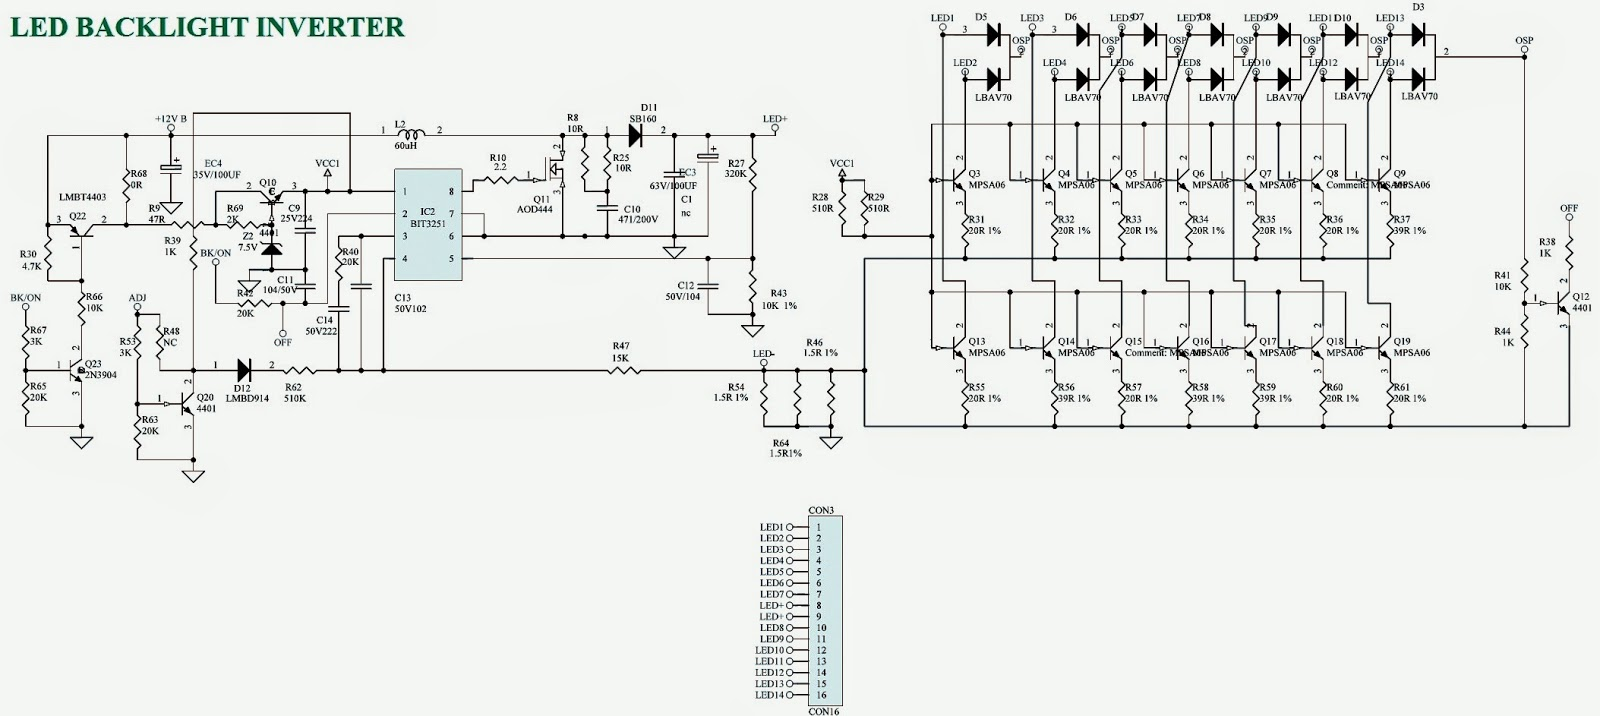 backlight inverter schematic  backlight  free engine image